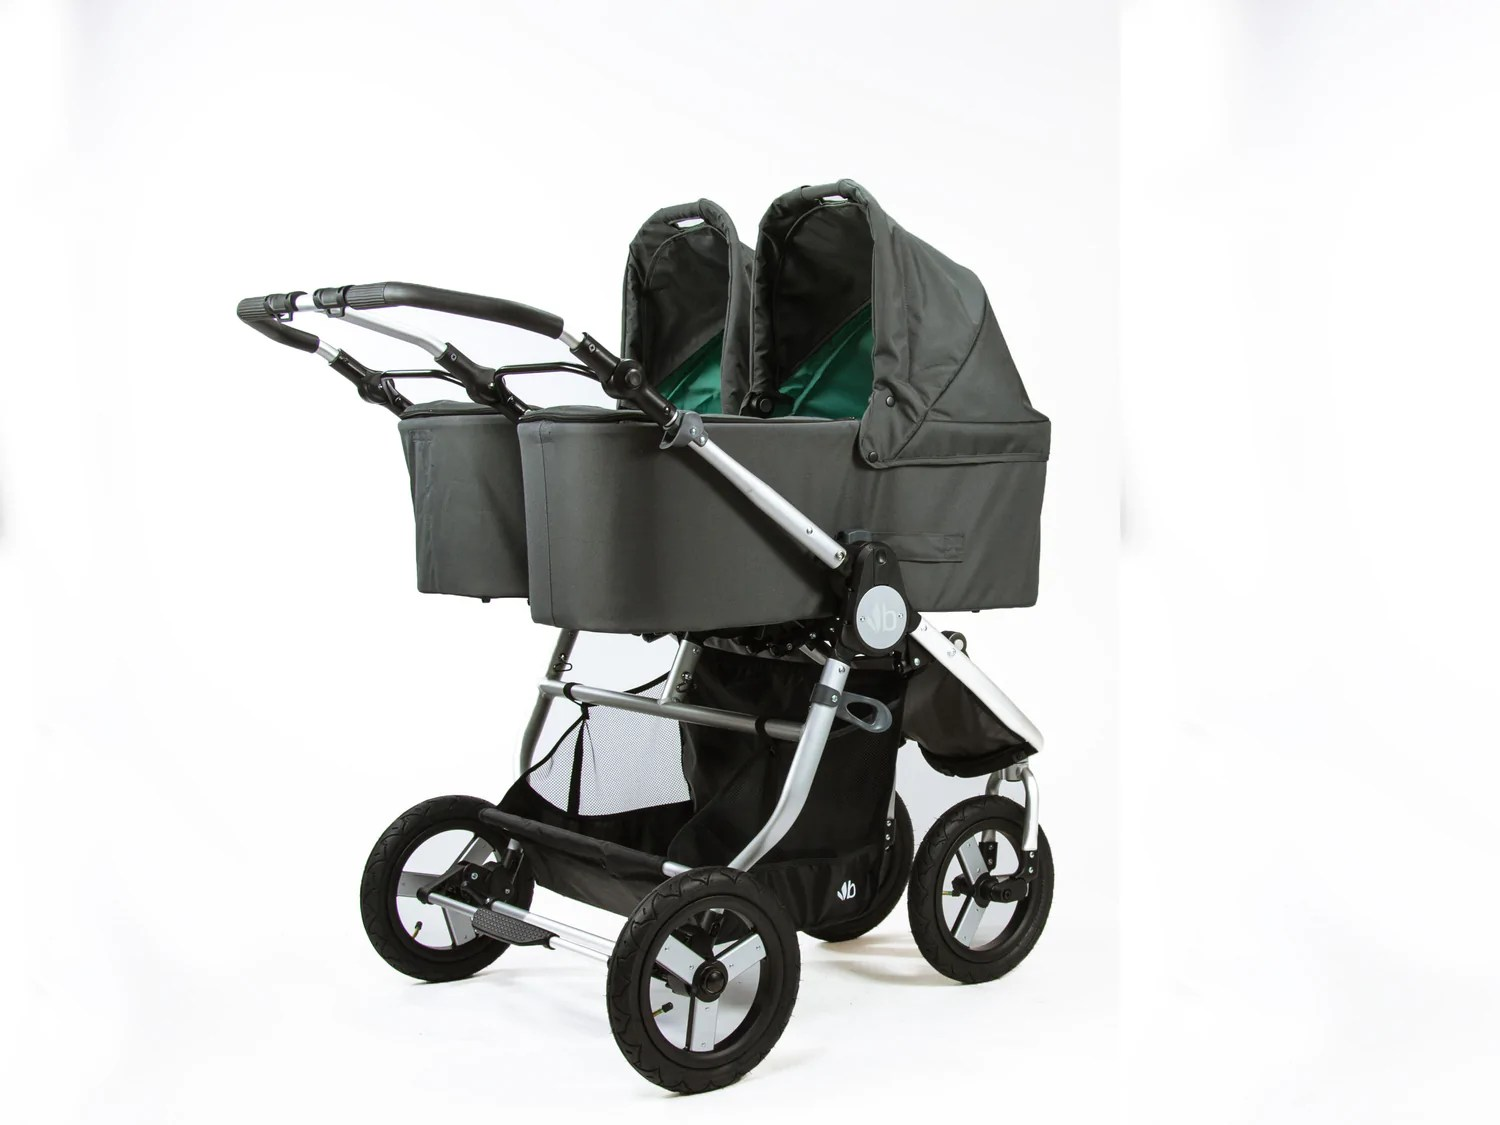 Stroller Bassinet Mattress Bumbleride Indie Twin Bassinet Carrycot